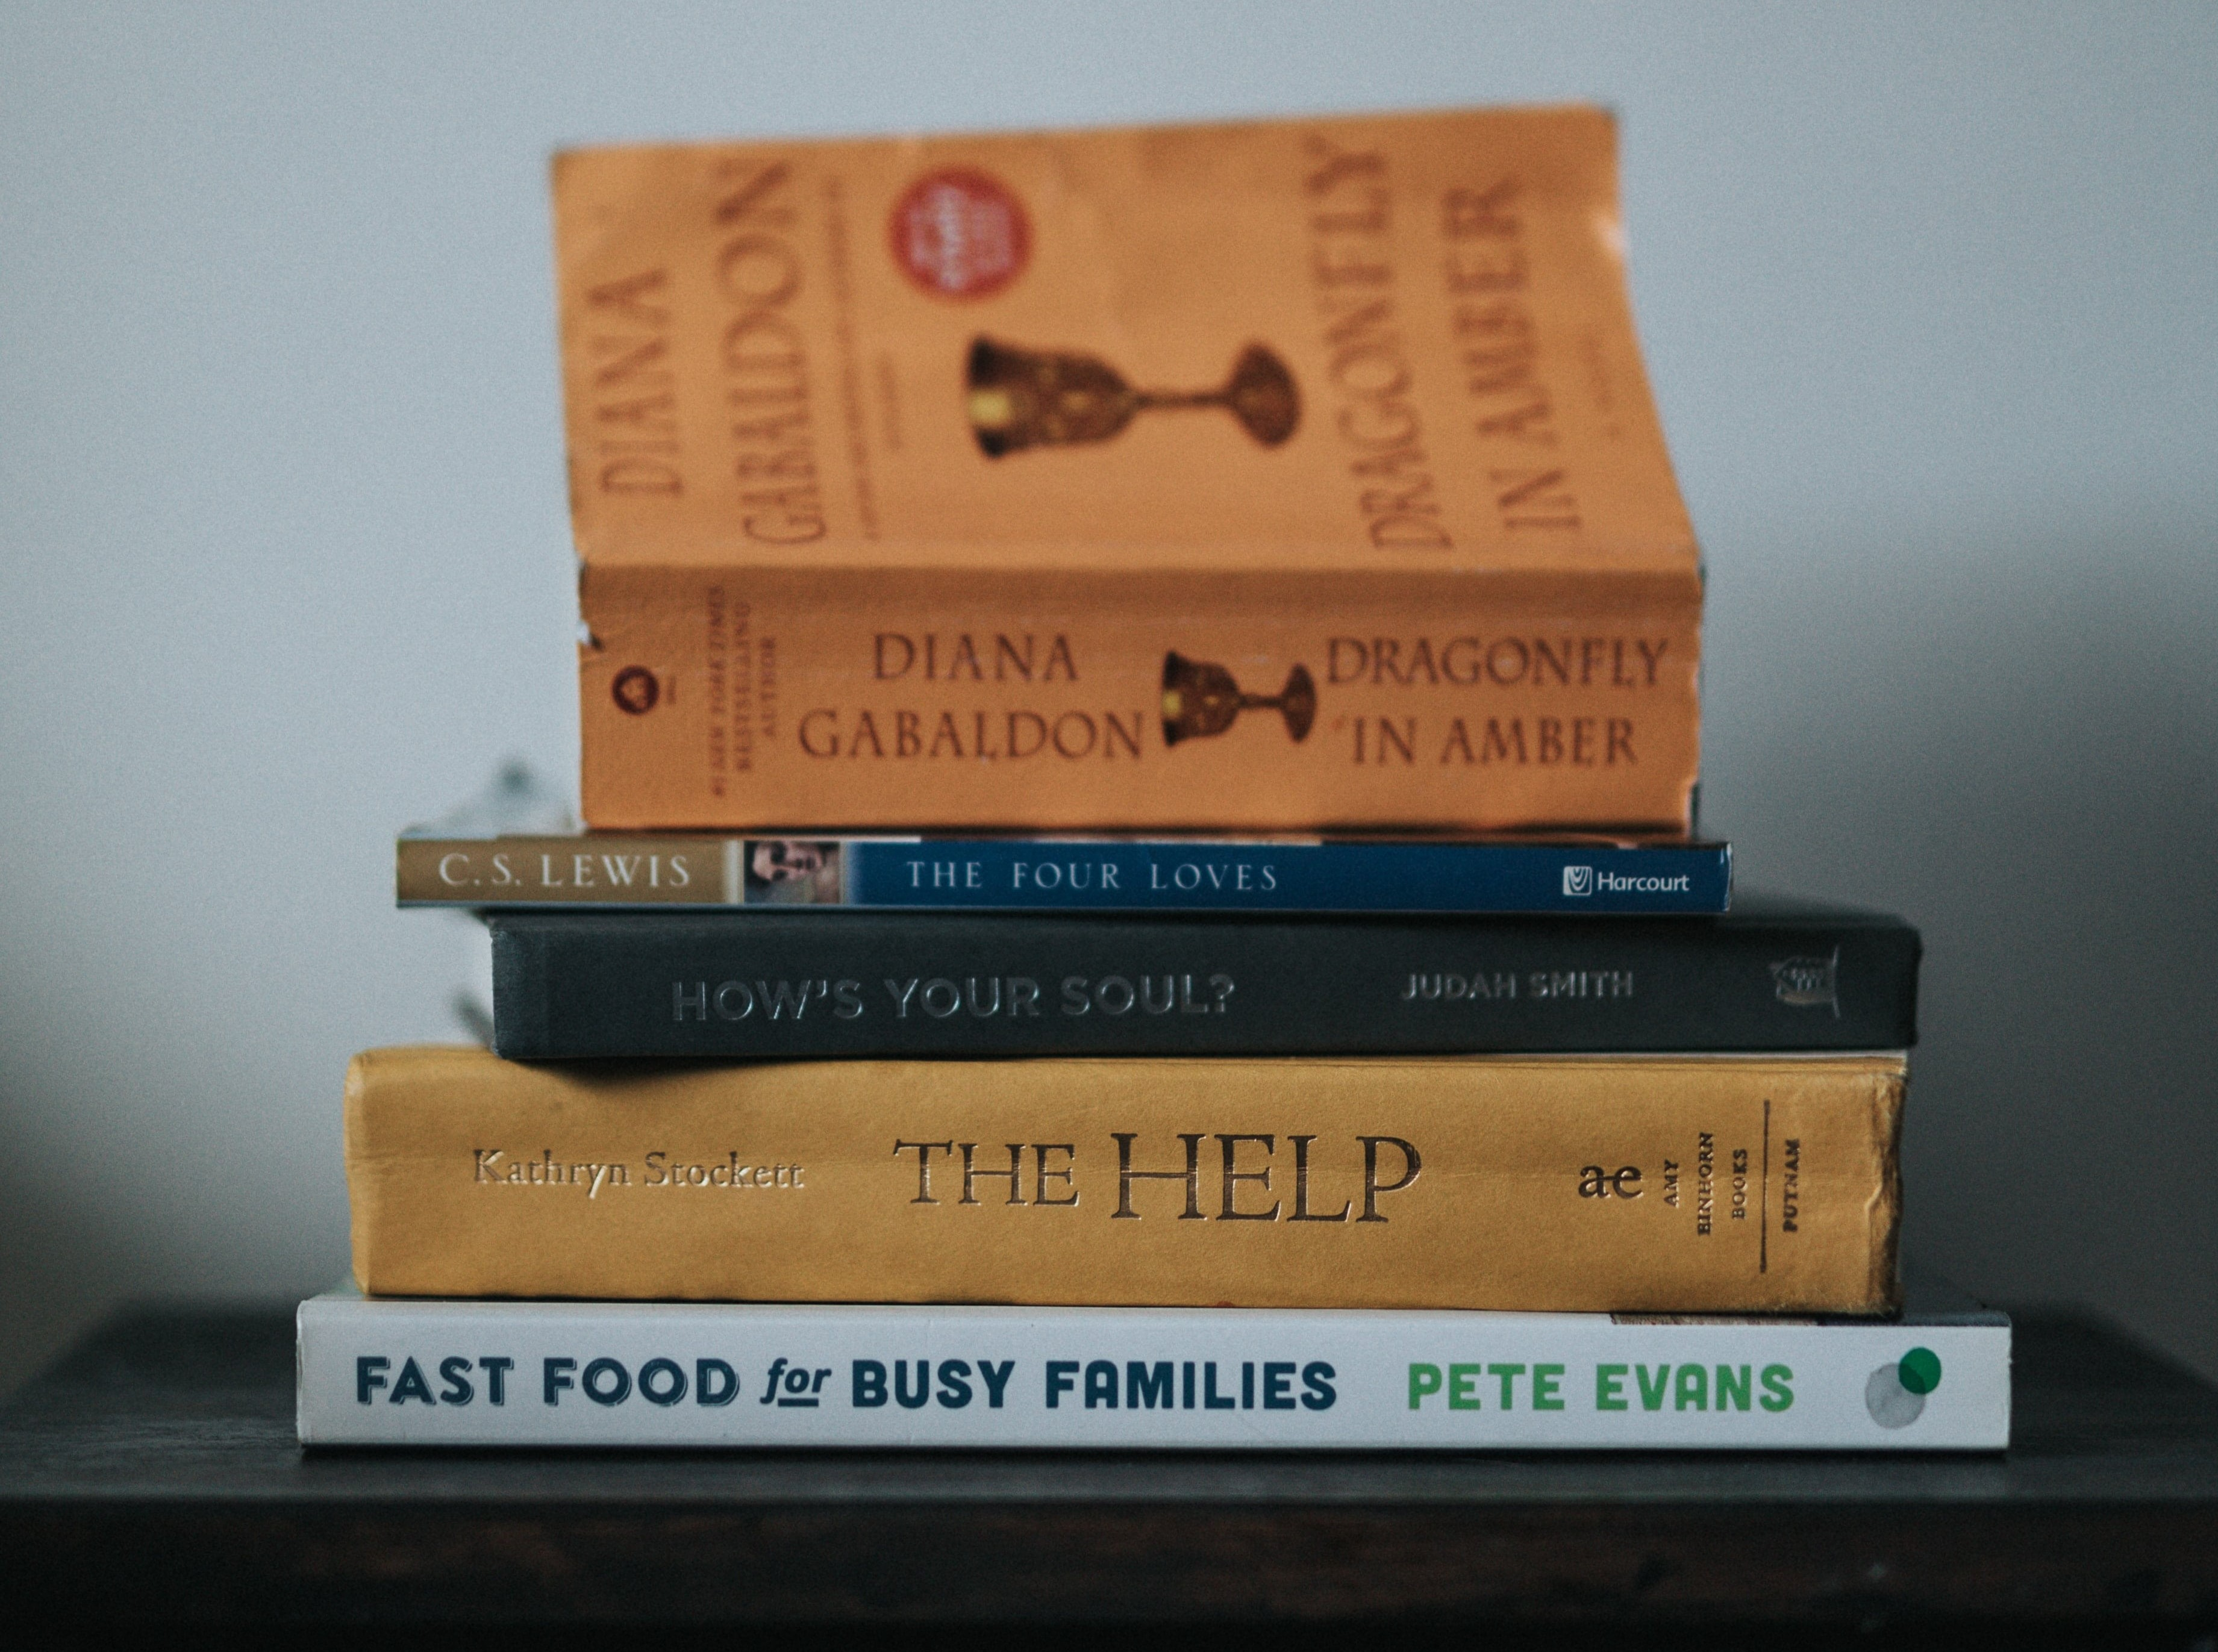 A photo of a pile of books stacked on a desk